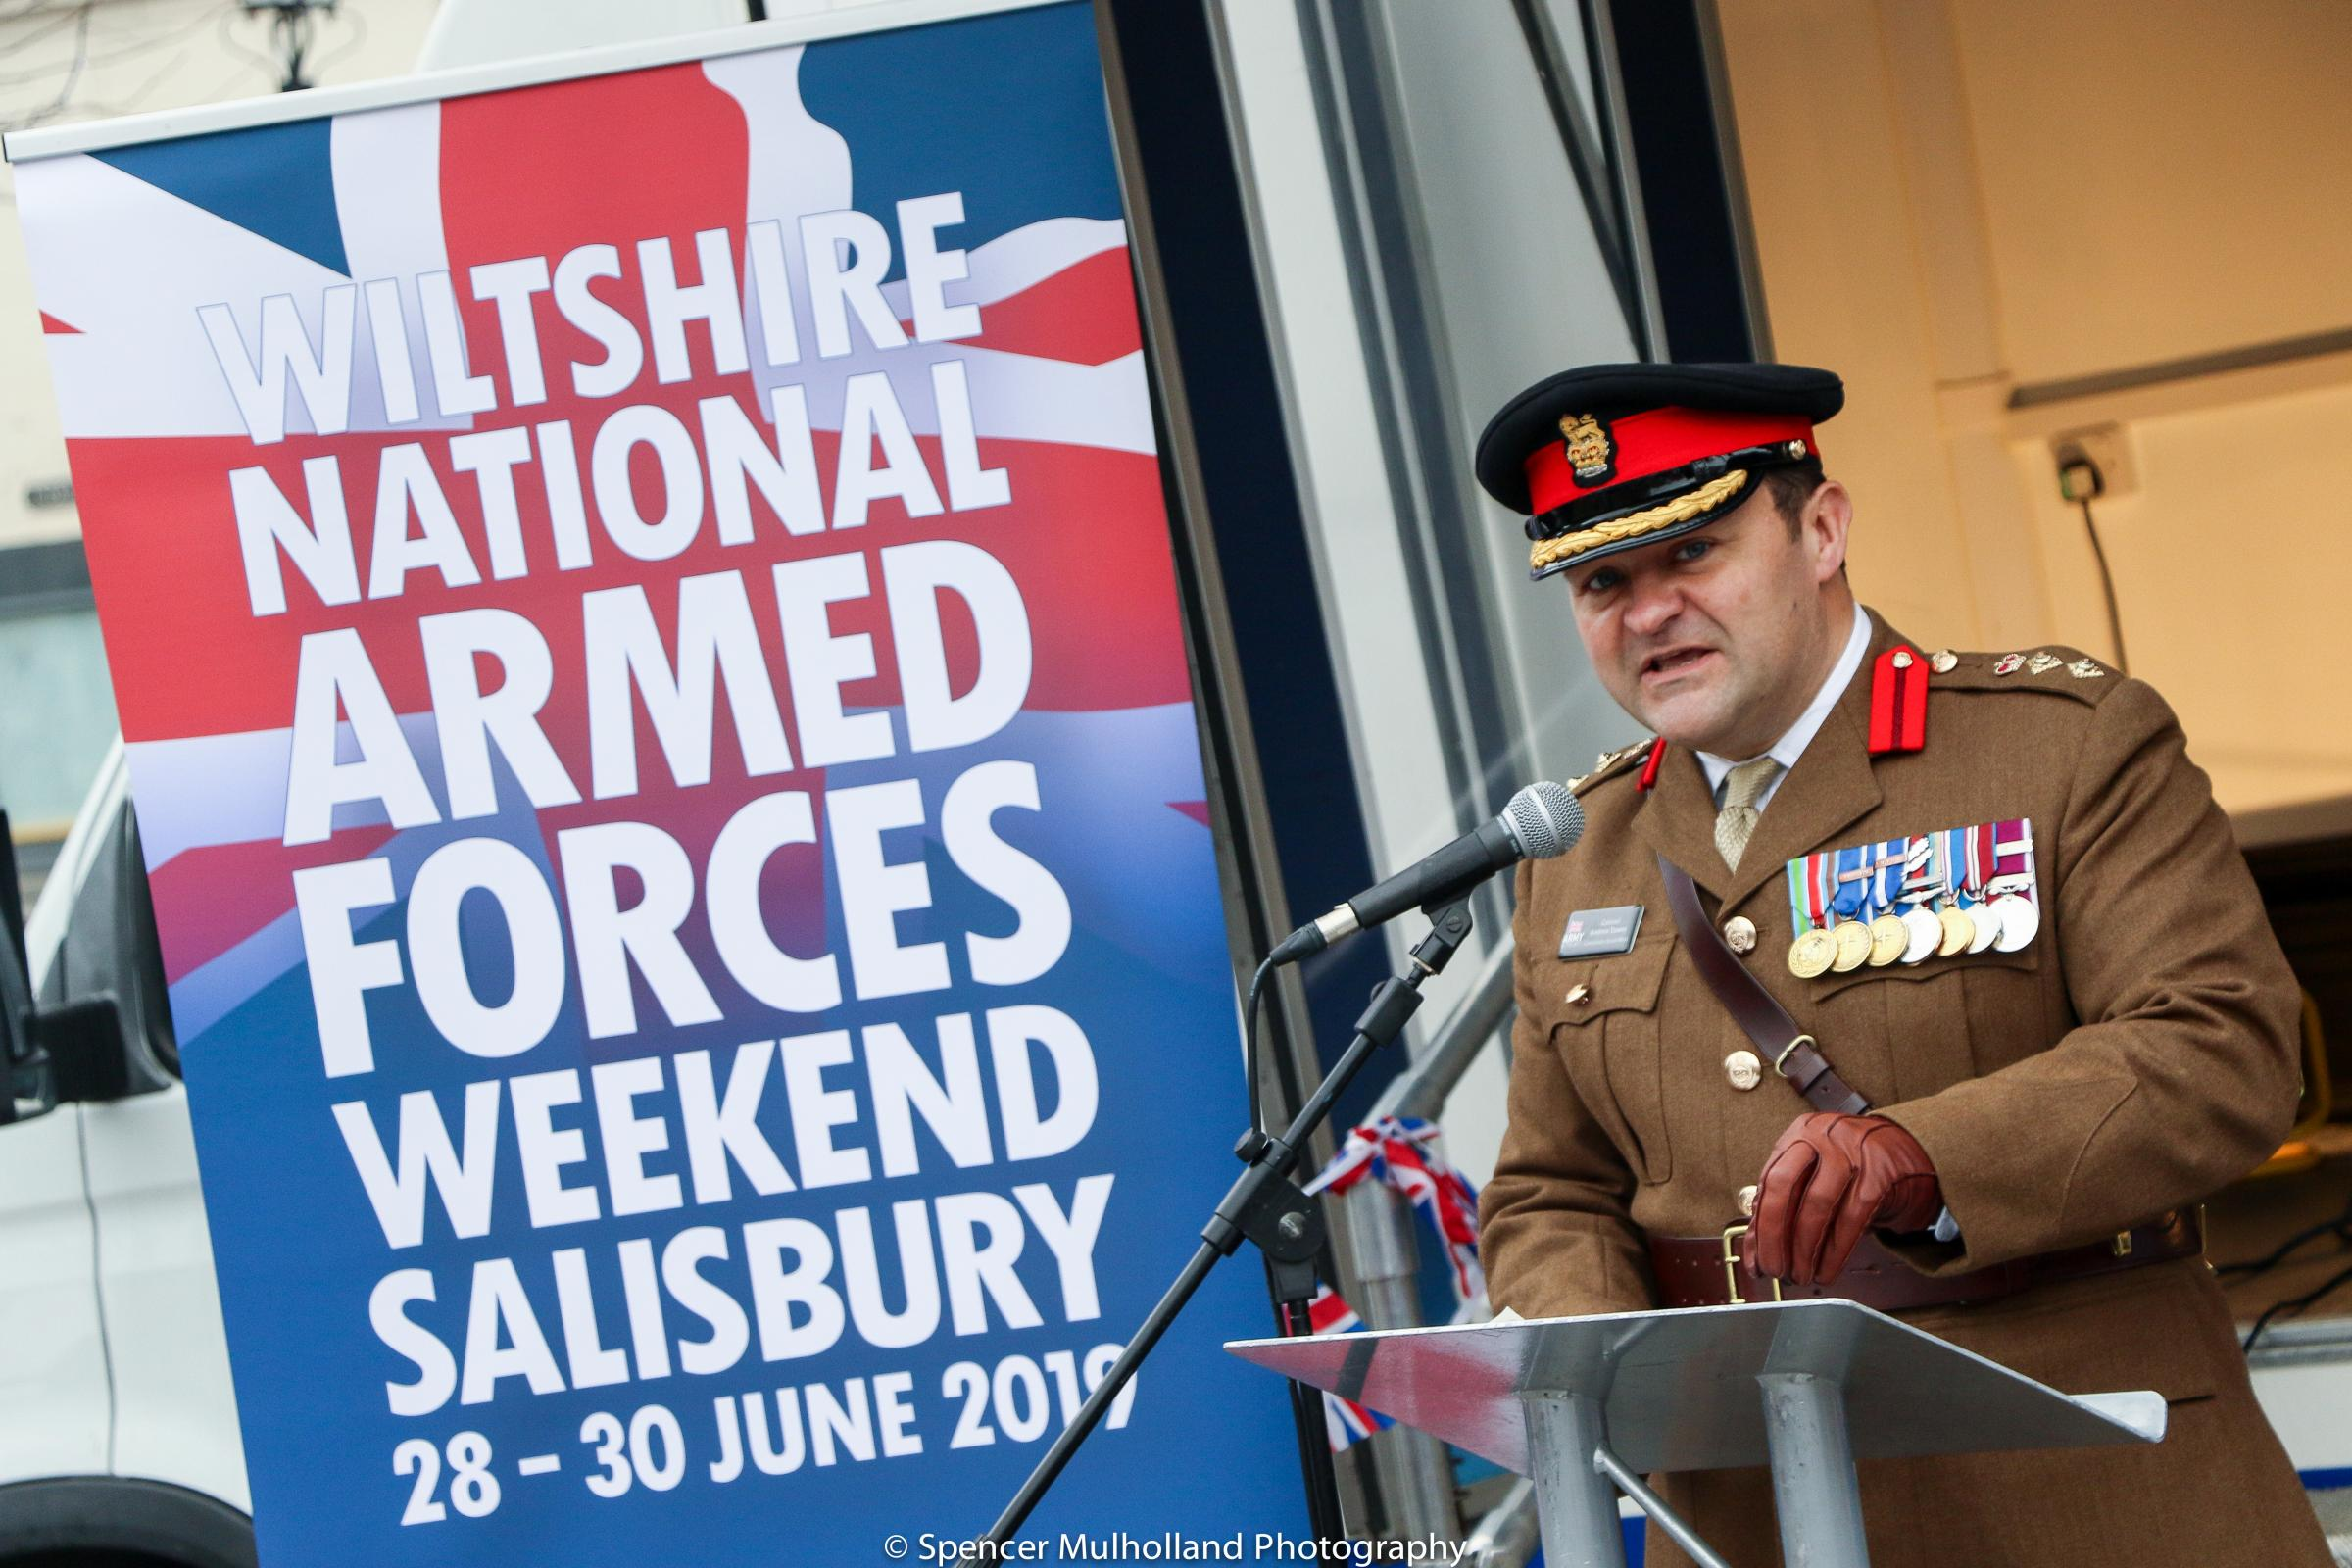 Colonel Andrew Dawes at the Armed Forces Day Launch in Salisbury.